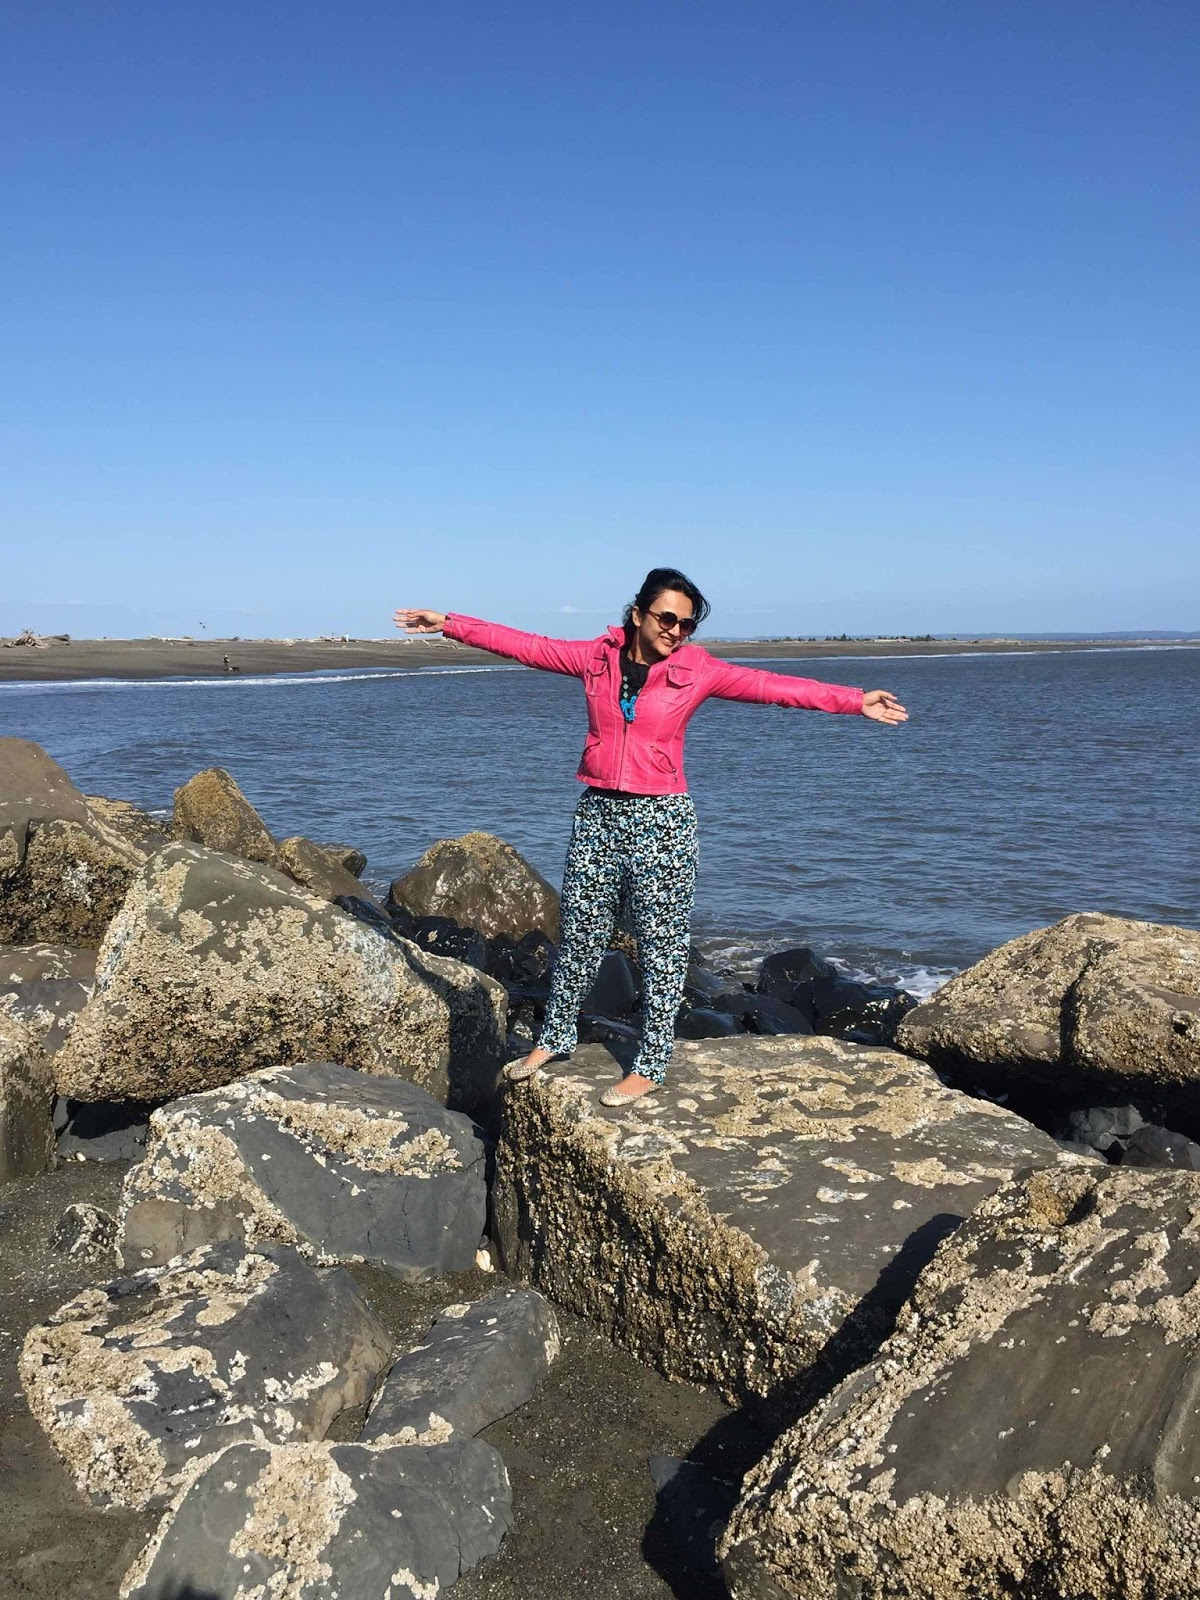 floral pants, printed pants, pink leather jacket with printed pants, ocean shores, girl on a beach